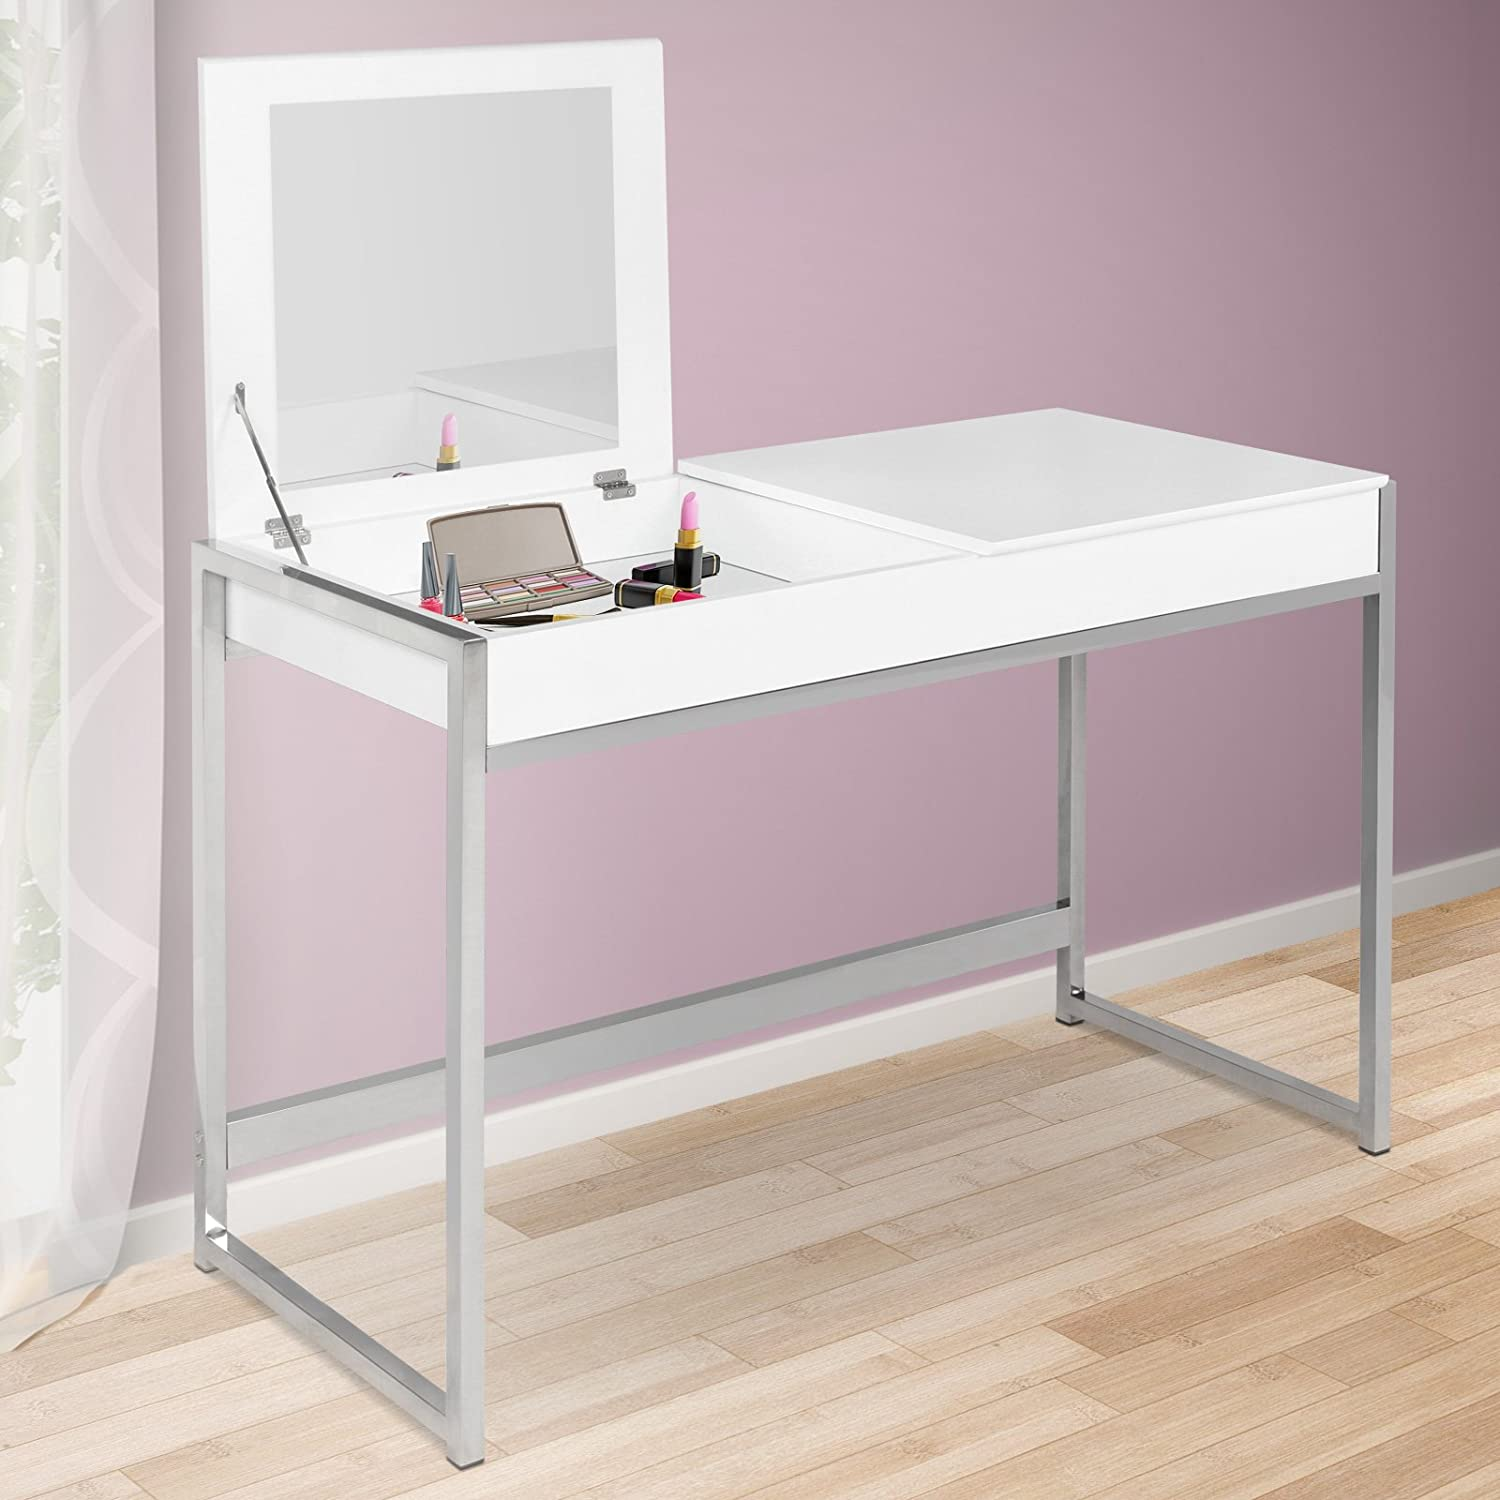 Bedroom dressing table with mirror - Miadomodo Dressing Table Make Up Dresser With 2 Compartments And Large Mirror White Cosmetics